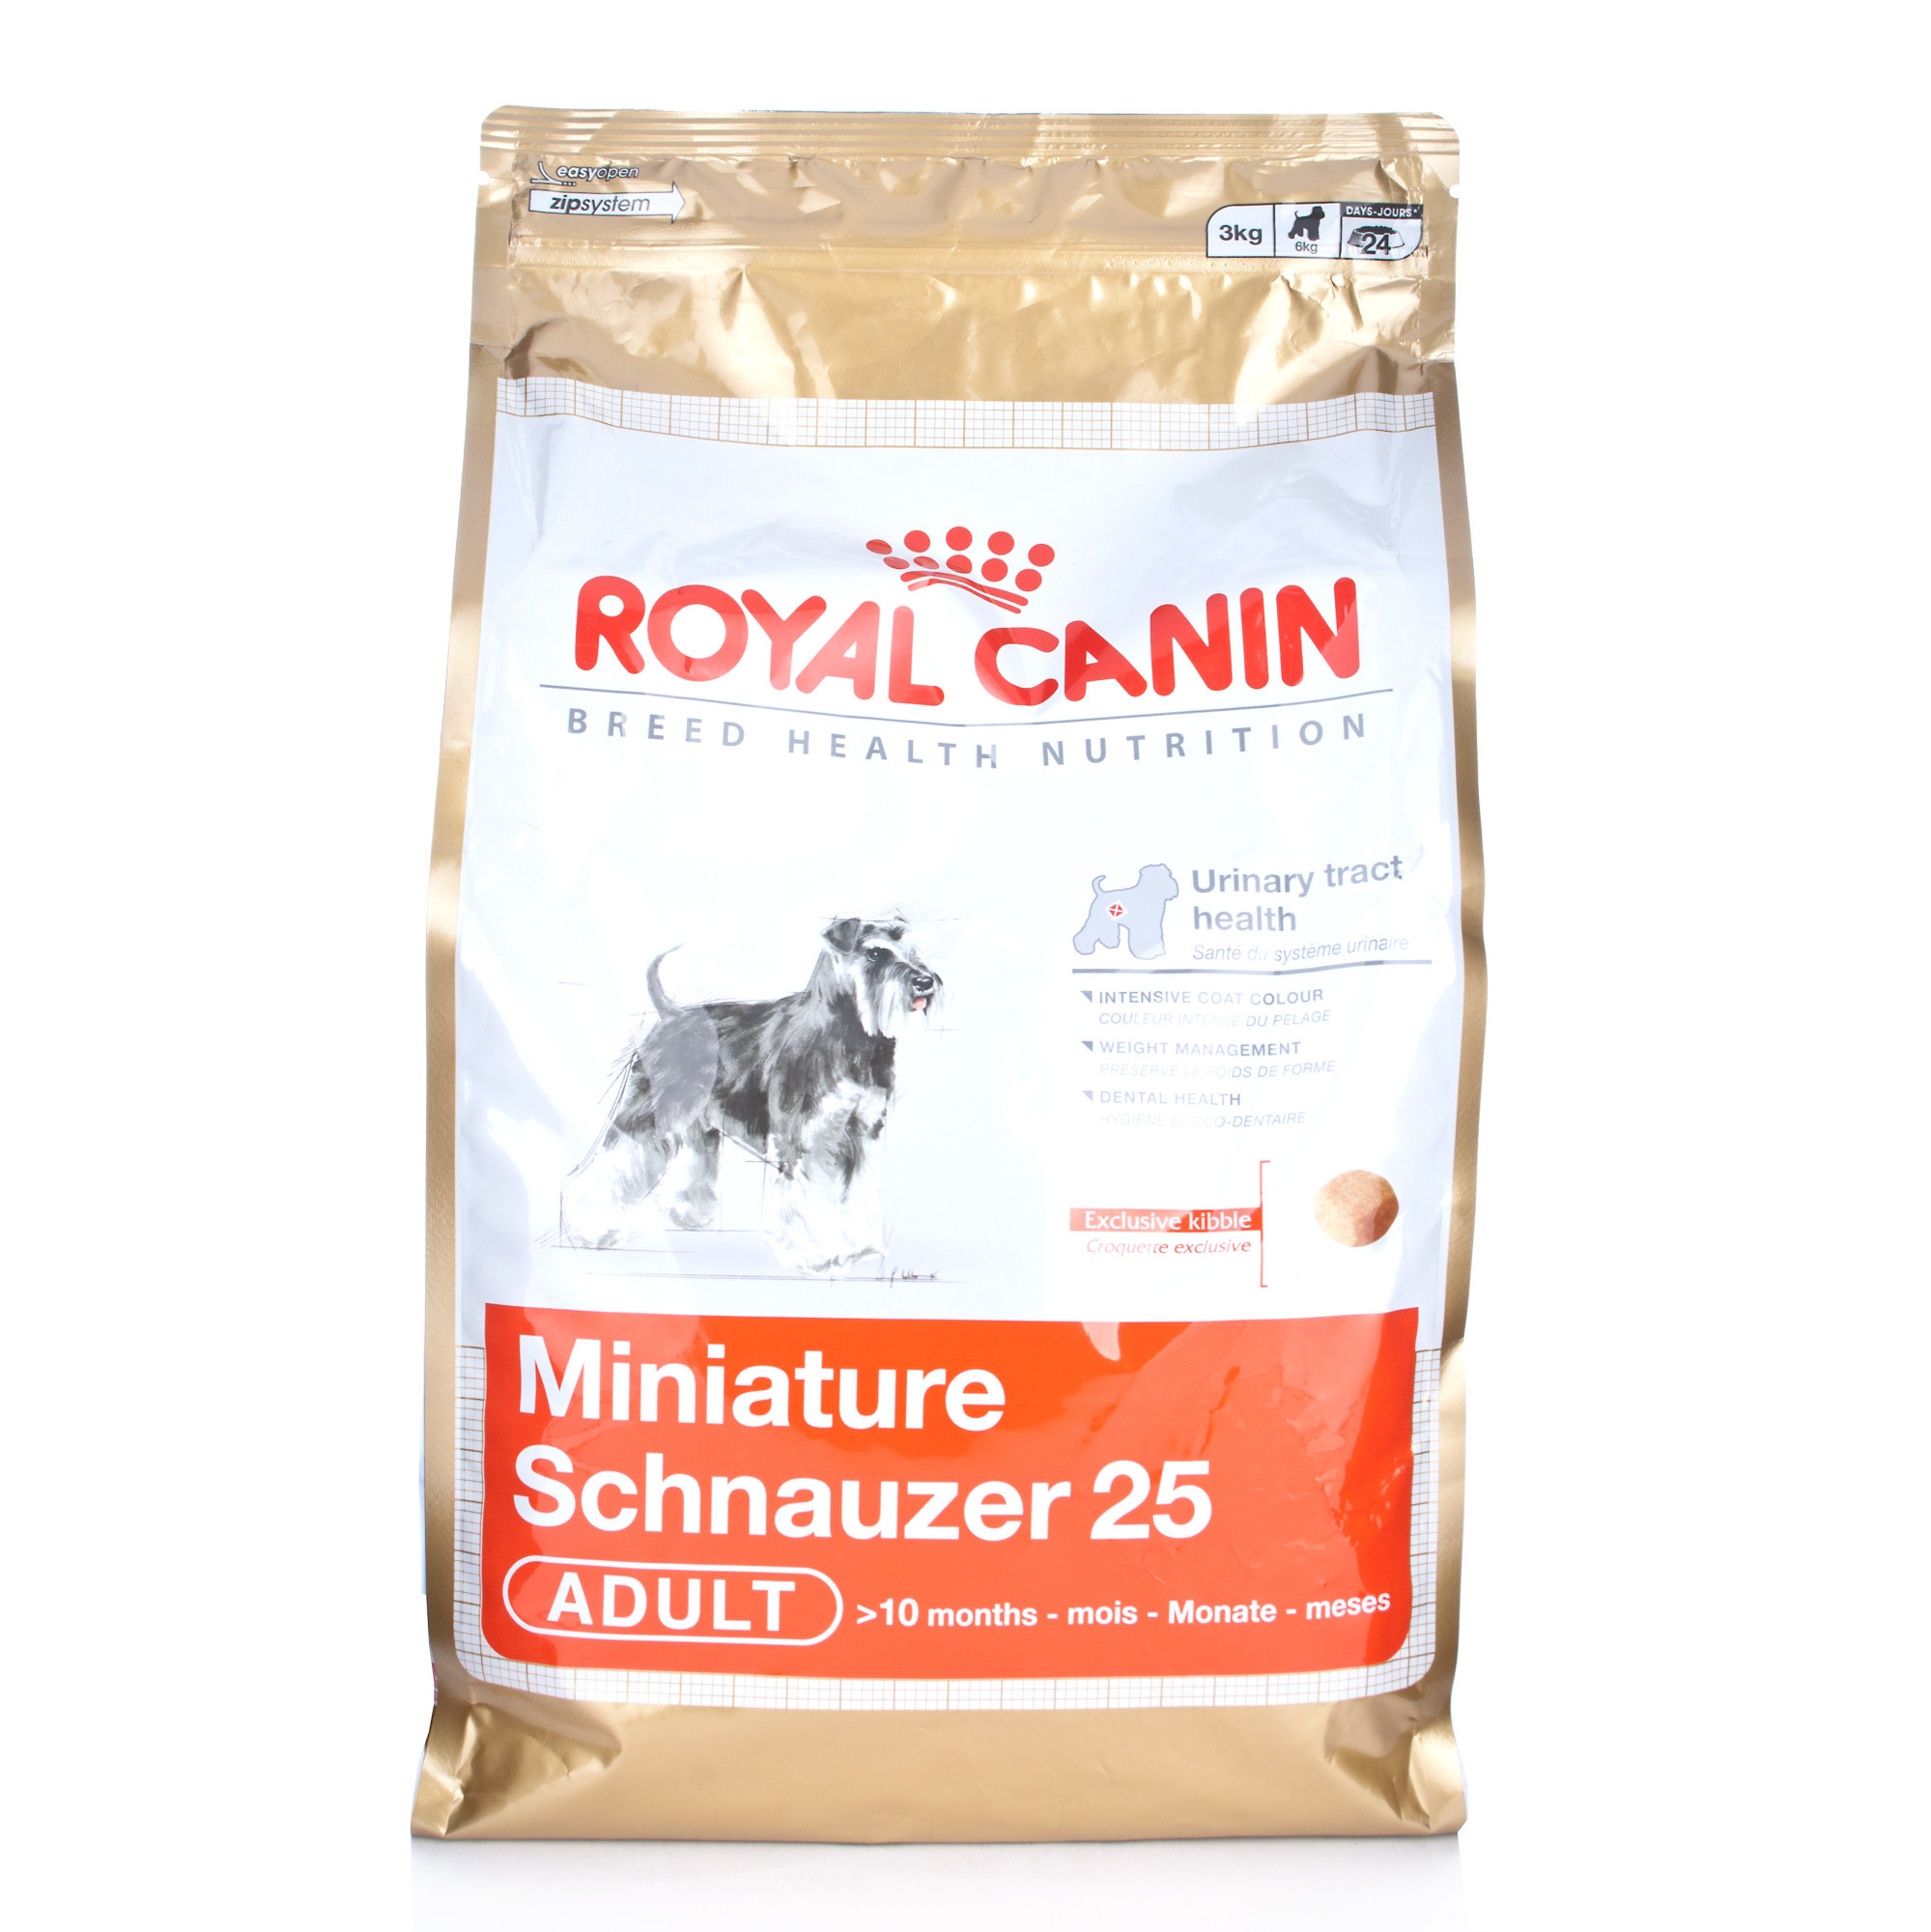 royal canin breed health nutrition miniature schnauzer. Black Bedroom Furniture Sets. Home Design Ideas